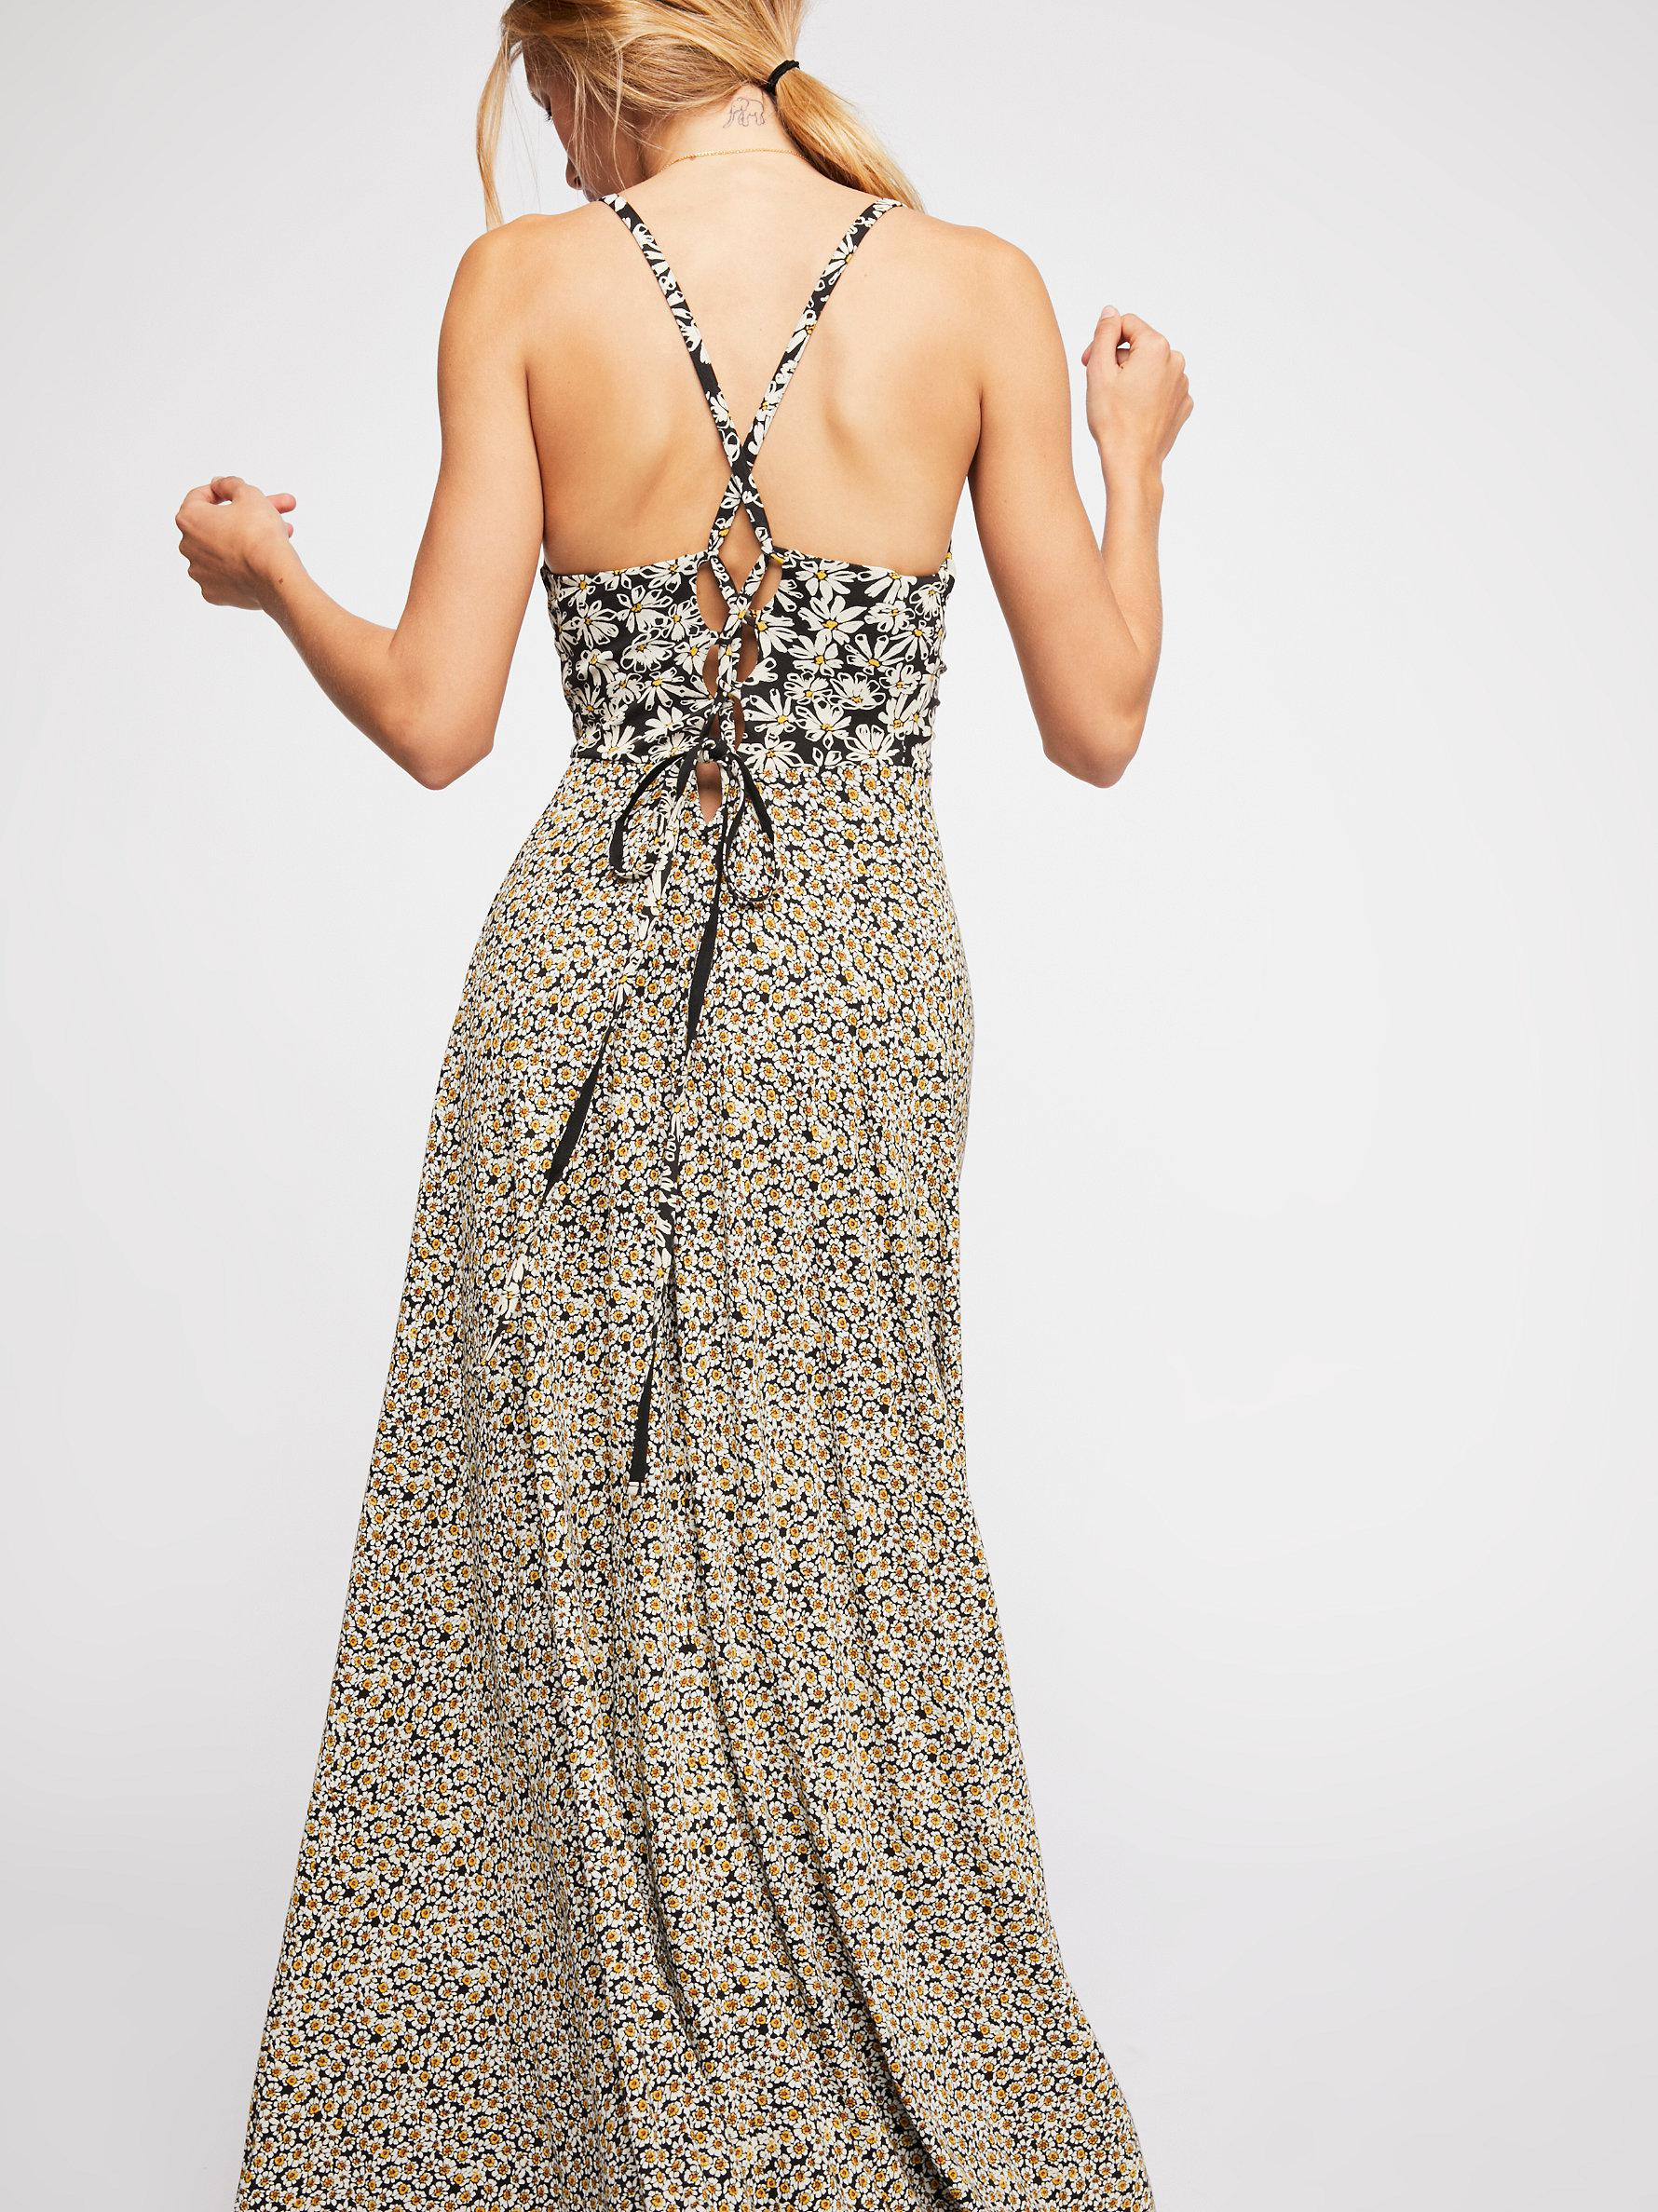 2b282f269a7 Where To Find Summer Maxi Dresses - Gomes Weine AG